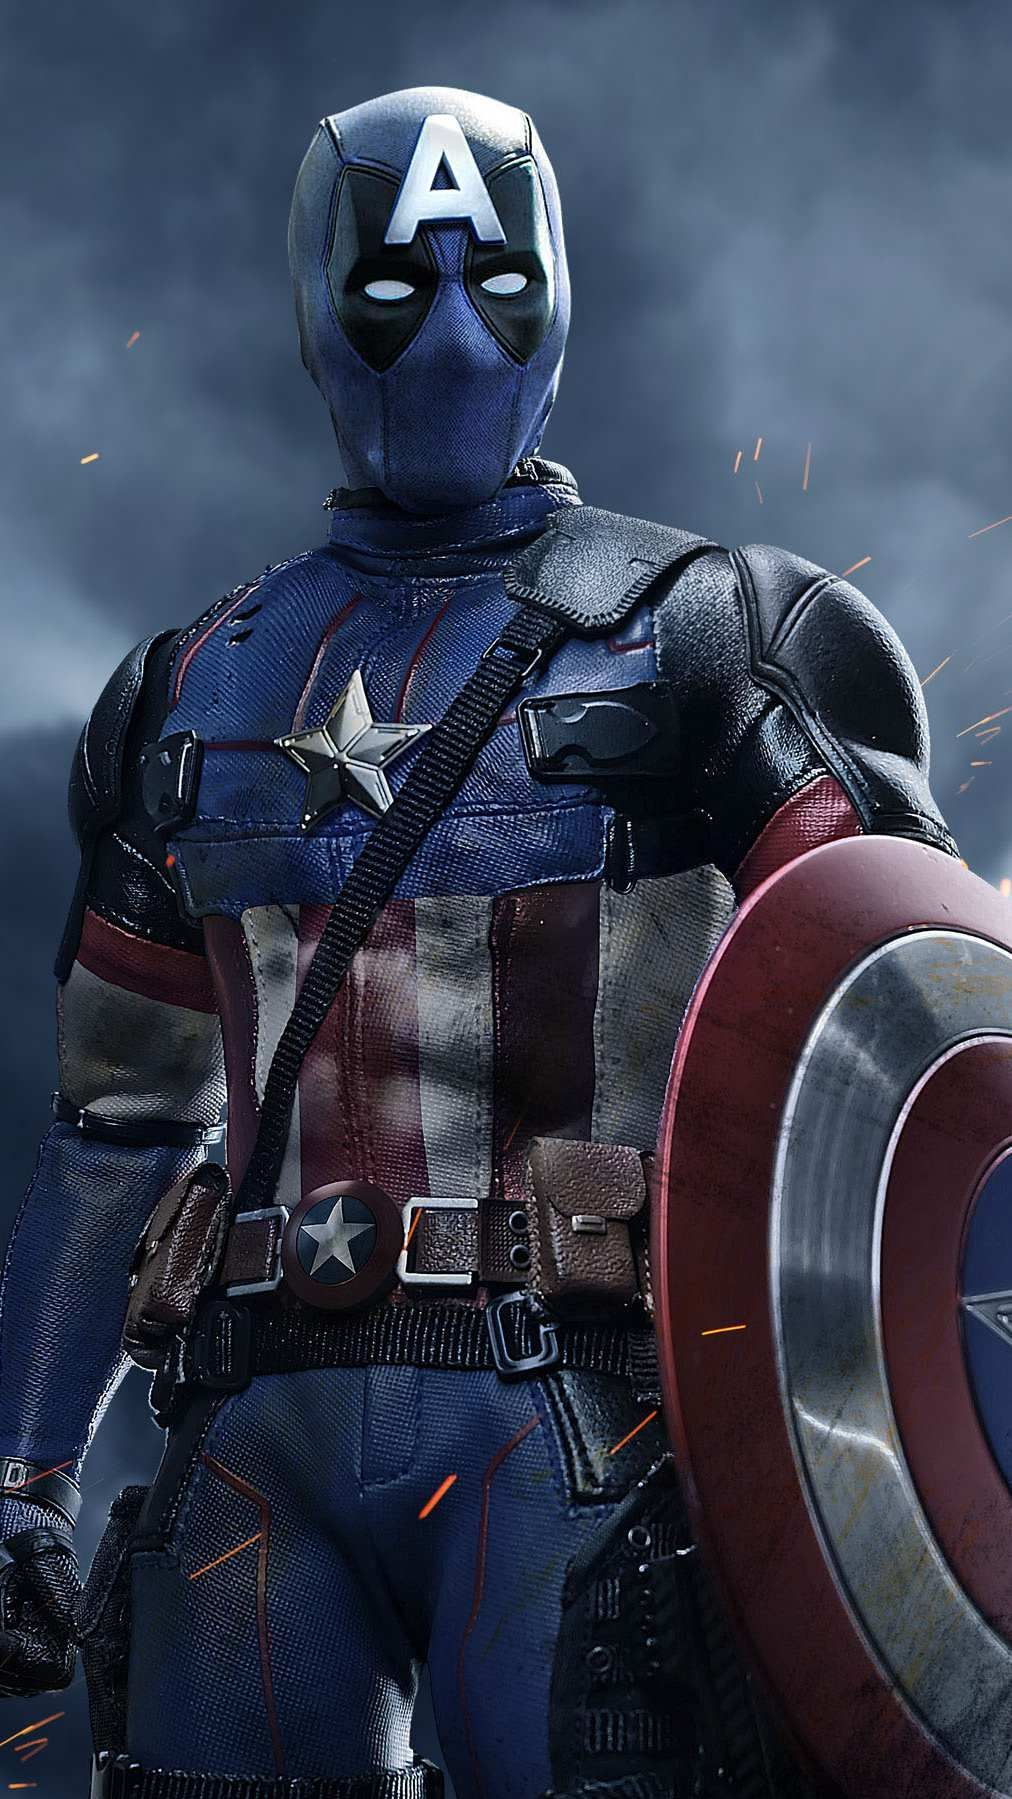 Download Cool Wallpaper For Iphone 11 Iphone 11 Pro 11 Pro Max 2019 Captain America Wallpaper Marvel Captain America Deadpool Wallpaper Iphone